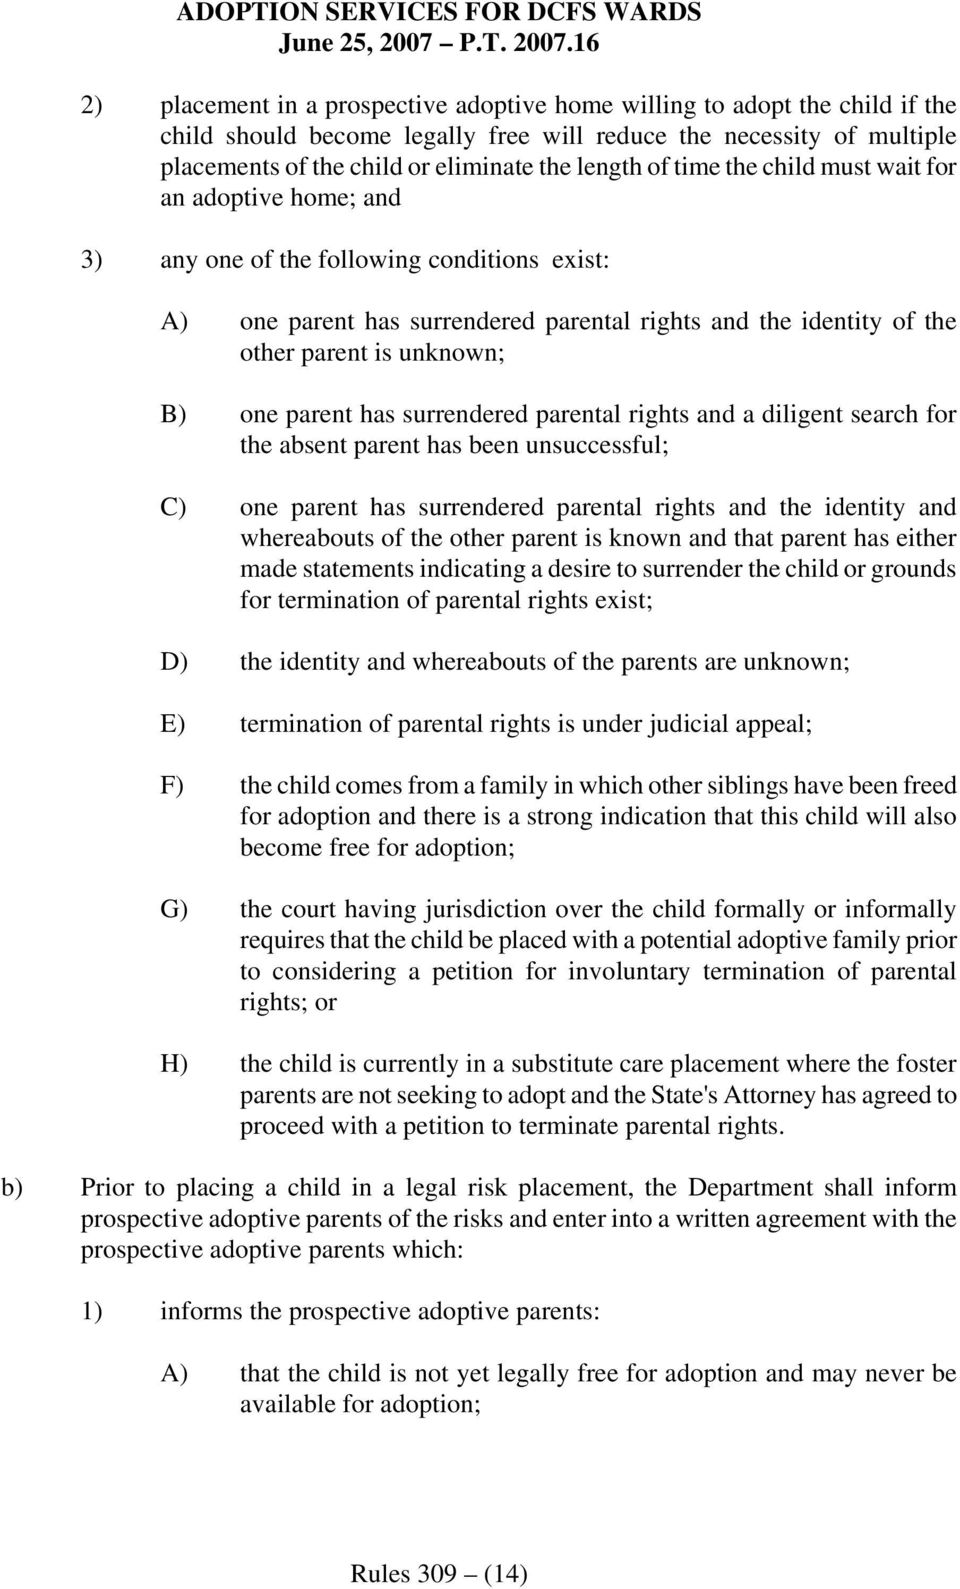 parent has surrendered parental rights and a diligent search for the absent parent has been unsuccessful; C) one parent has surrendered parental rights and the identity and whereabouts of the other